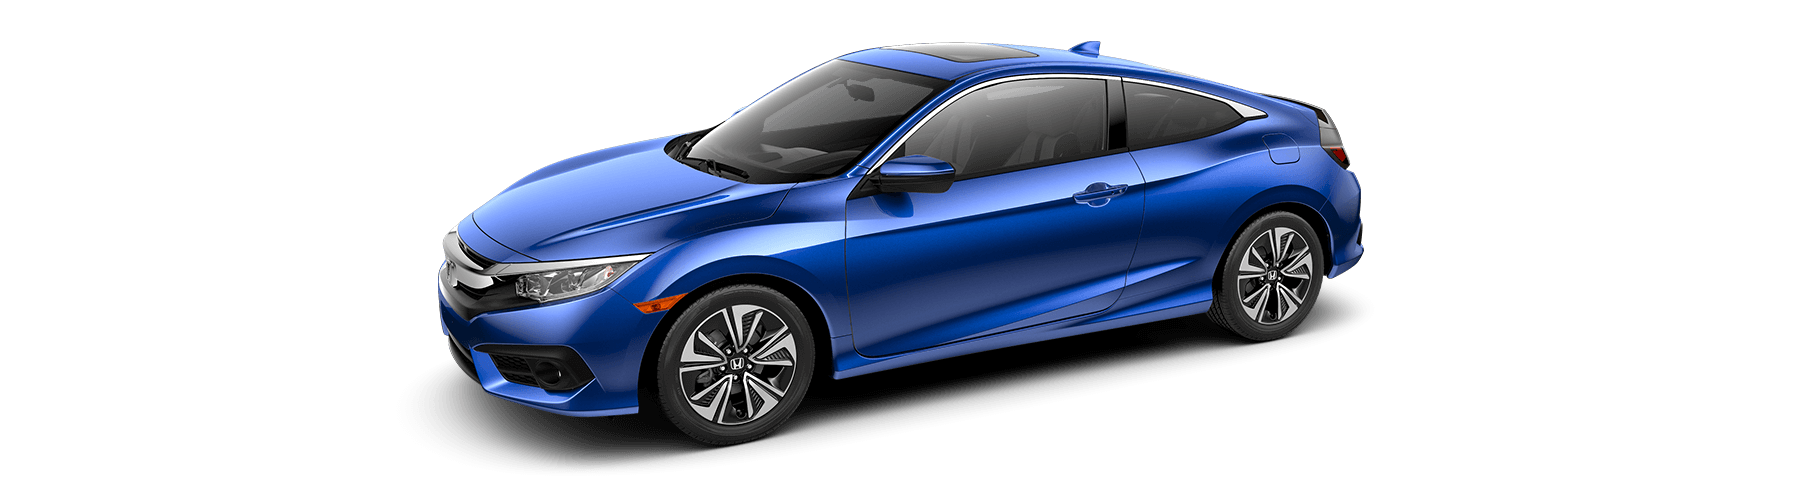 When honda will release new autos weblog for Honda fit vs civic